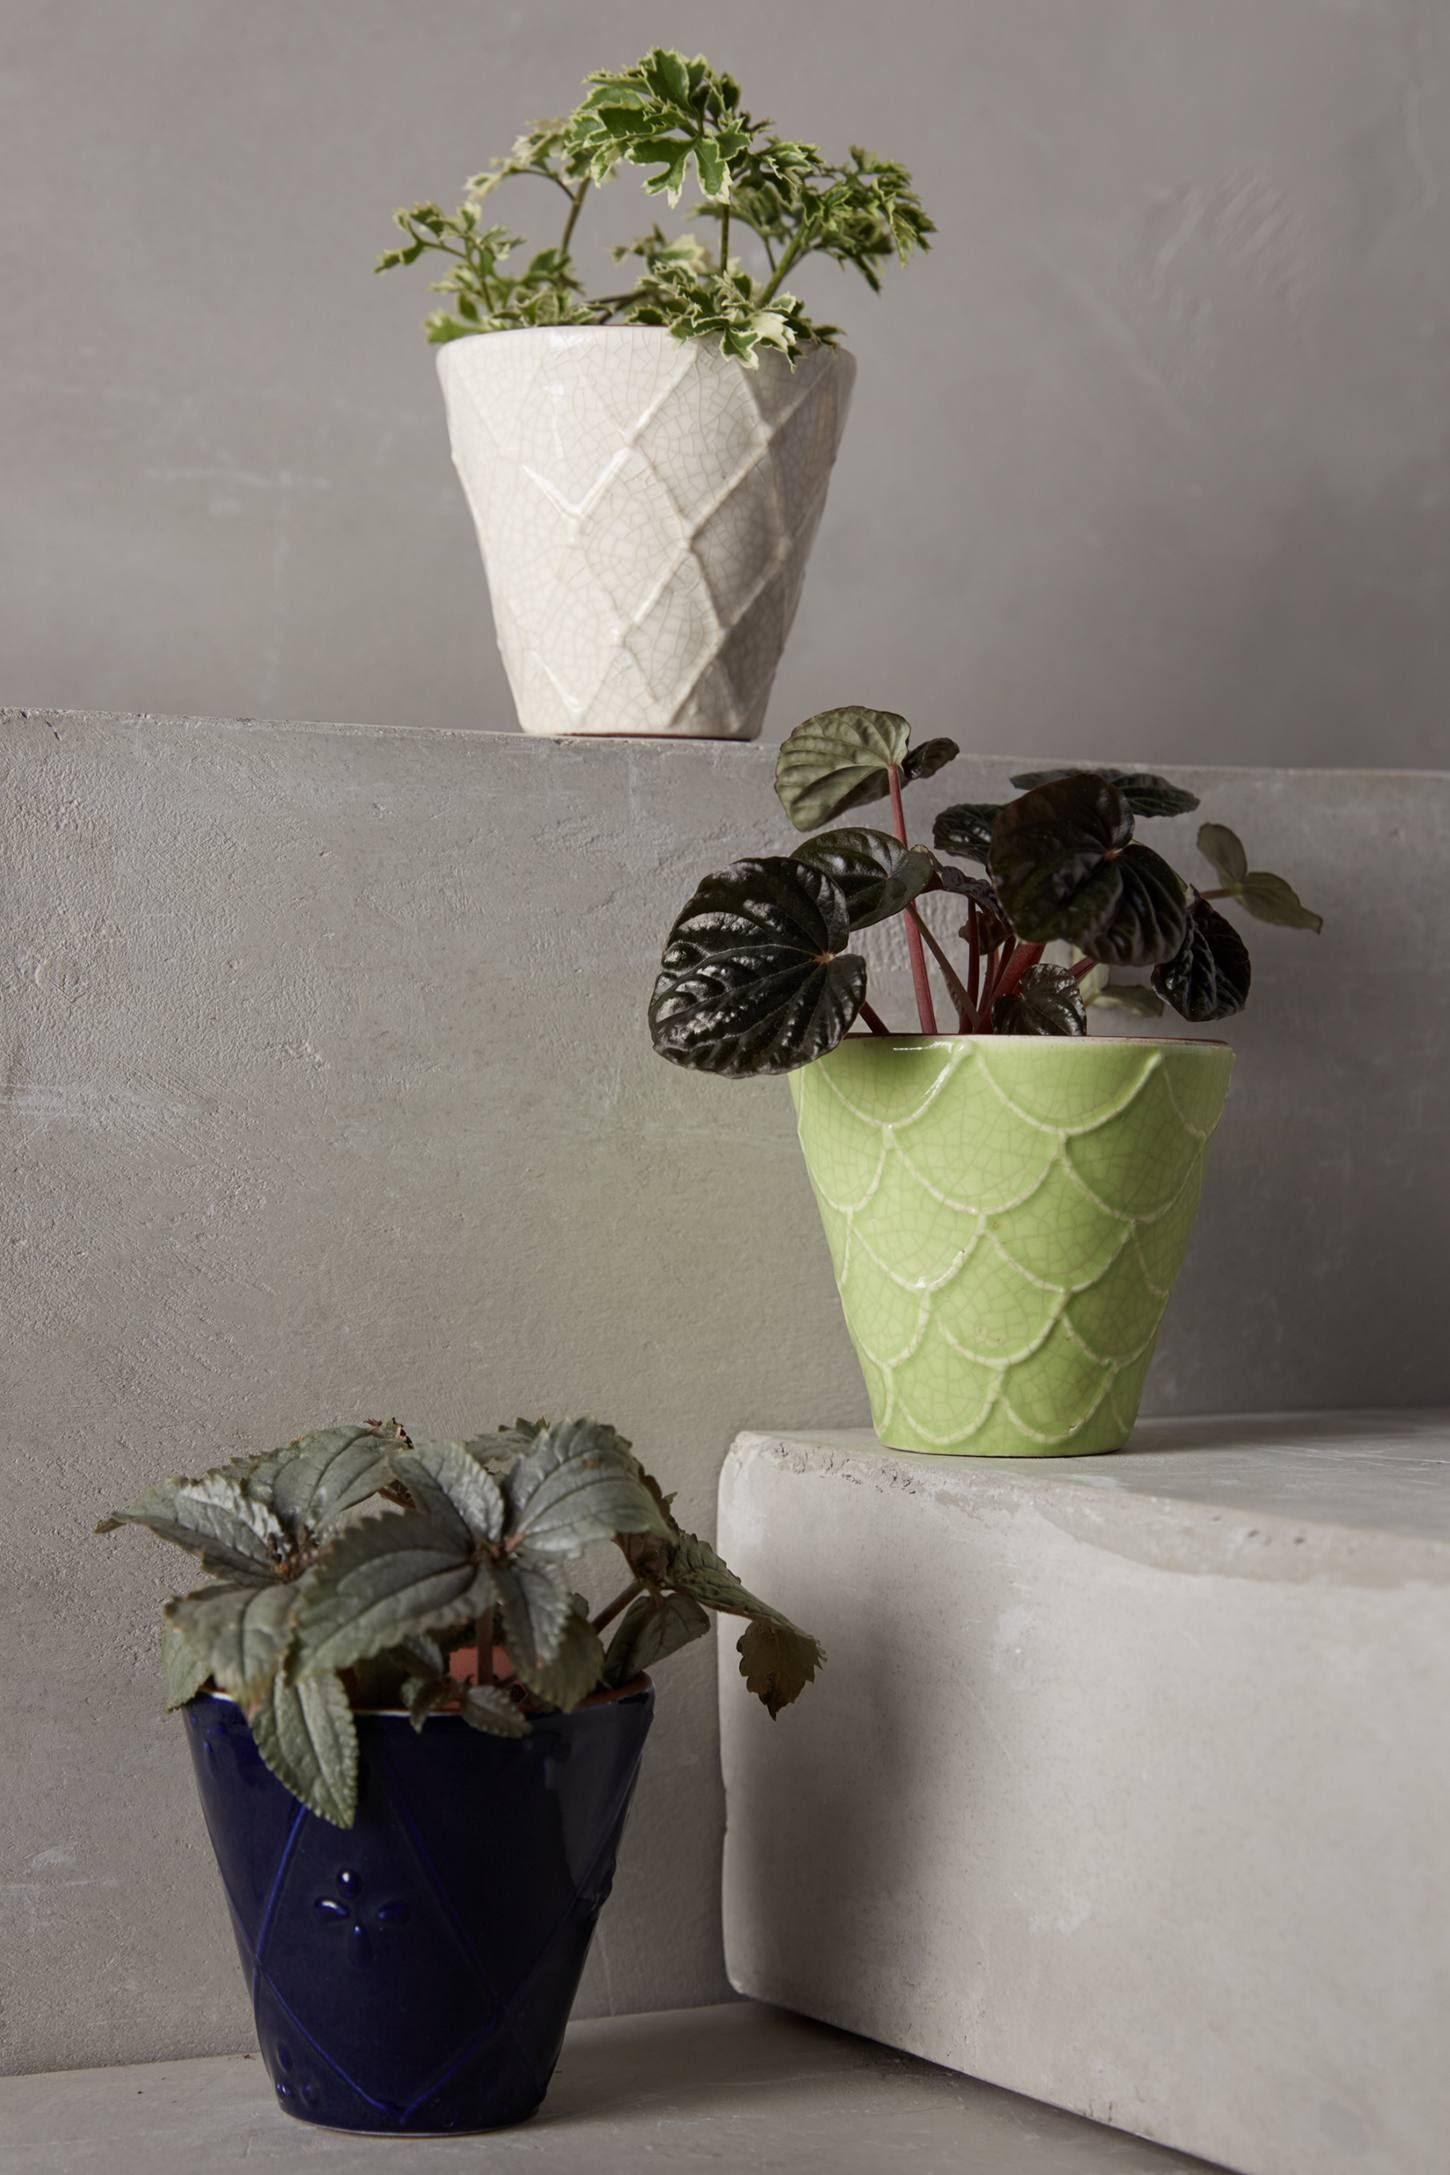 Windowsill pot from Anthropologie